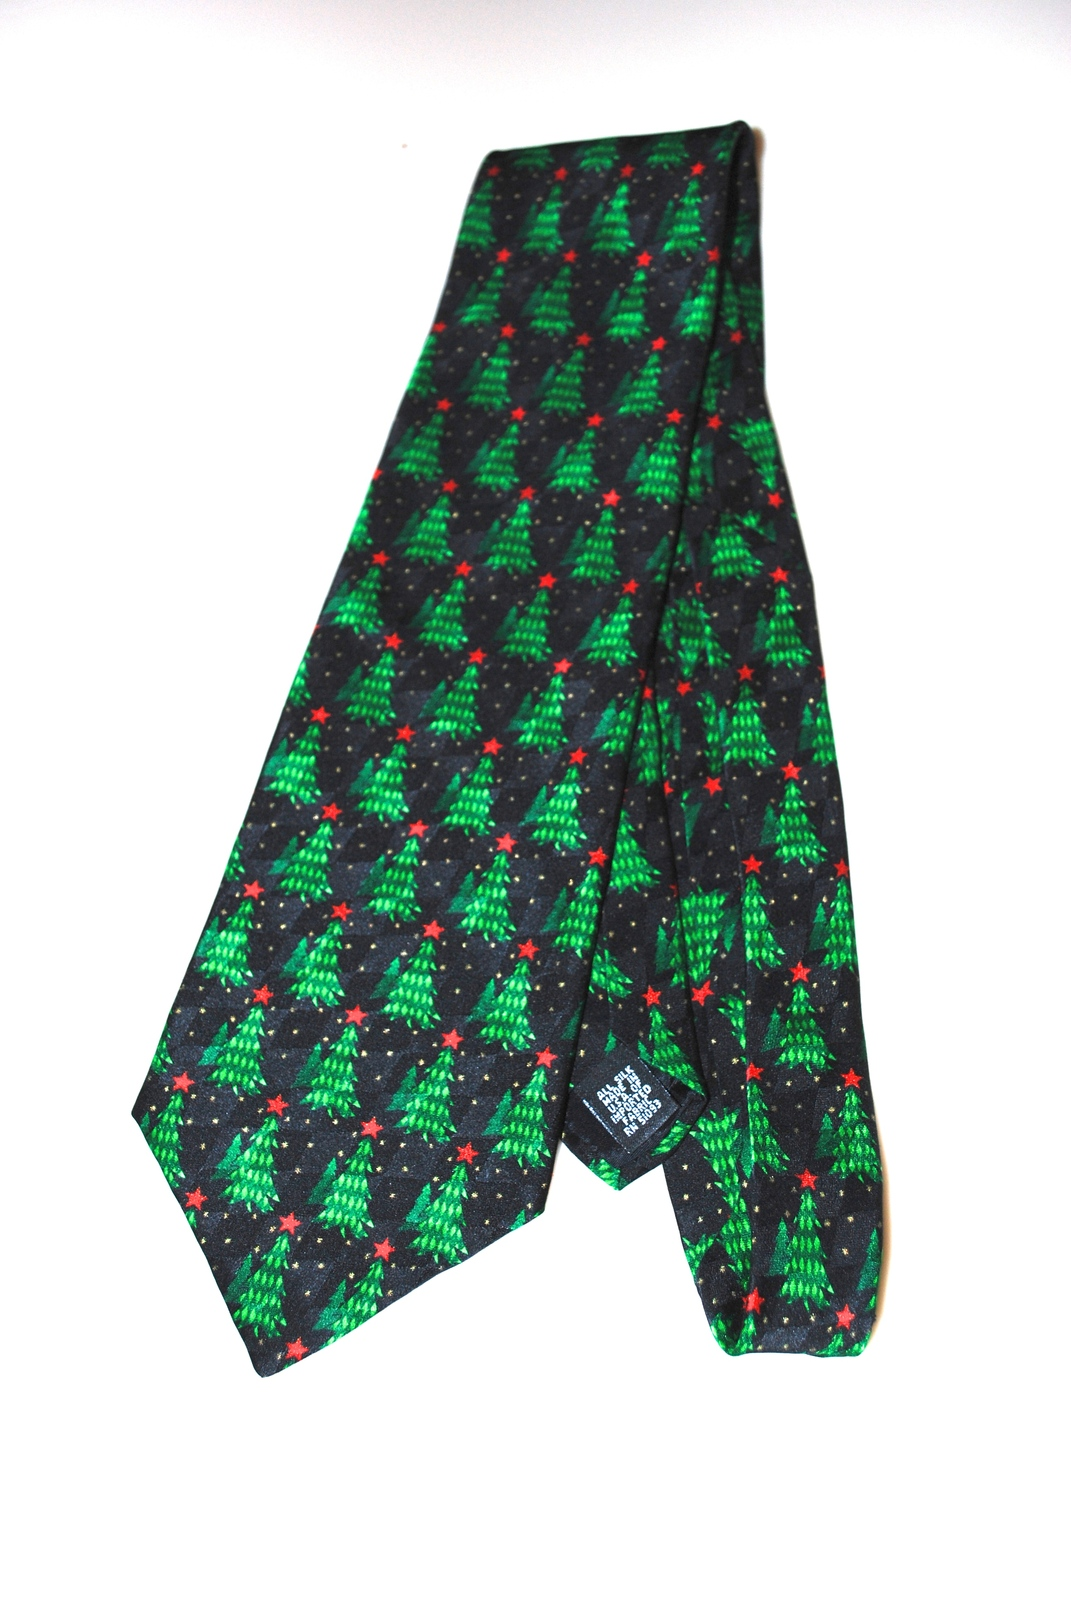 Holiday Traditions Hallmark Cards Christmas Tree Silk Tie Blue Red Star